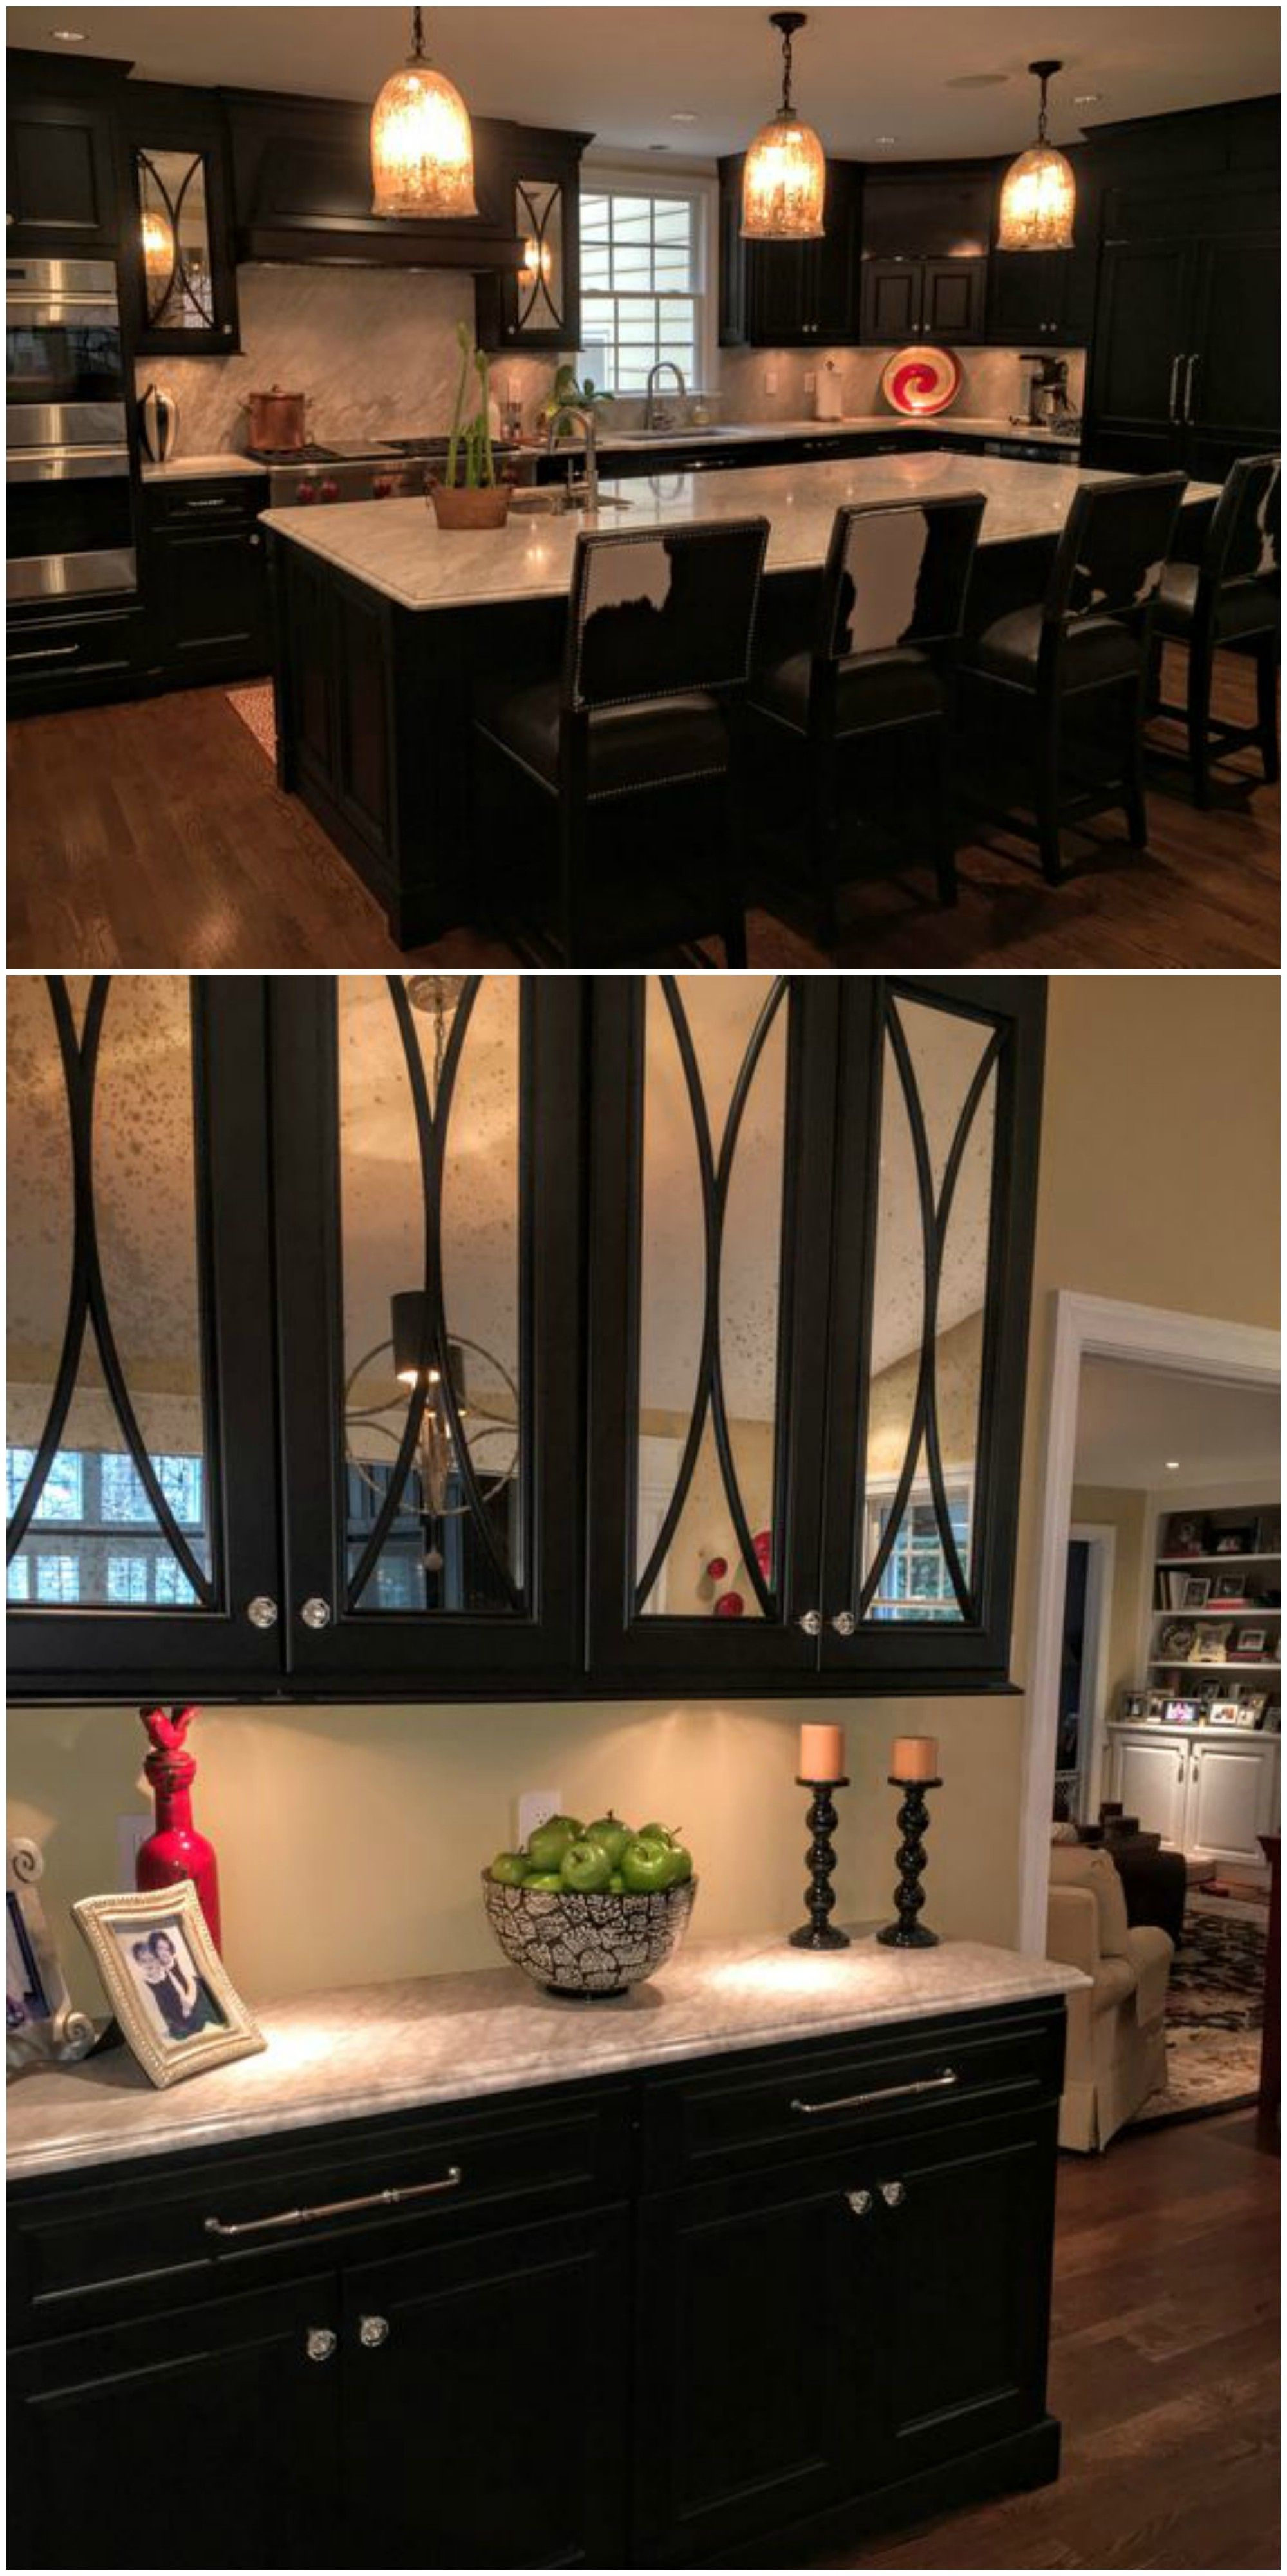 Dark Painted Kitchen Mercury Glass Fronted Doors With Arched Mullions Light Kitchen Cabinets Upgrade Painting Kitchen Cabinets Glass Fronted Kitchen Cabinets